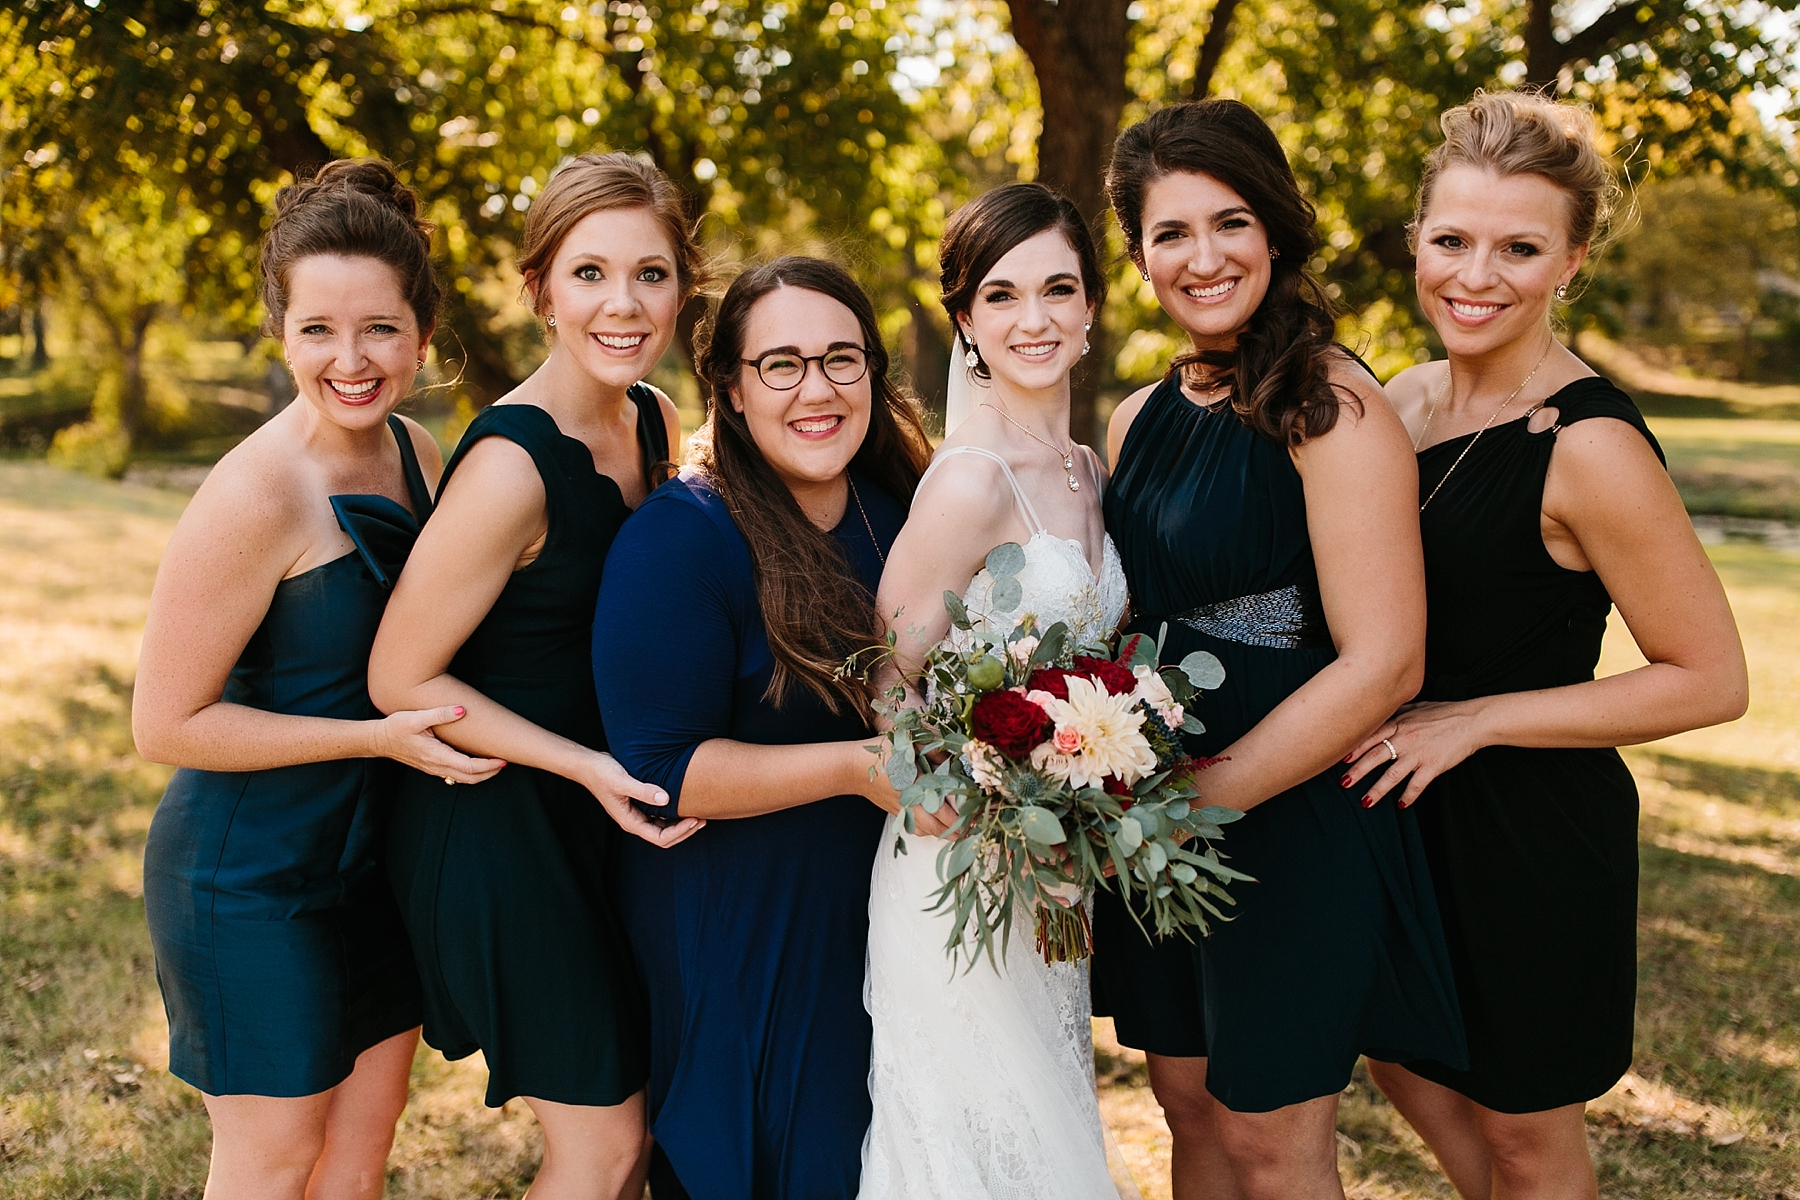 Emily + Caleb _ an elegant, intentional, industrial style wedding with navy + gold accents at 6500 in Dallas, TX by North Texas Wedding Photographer Rachel Meagan Photography _ 067